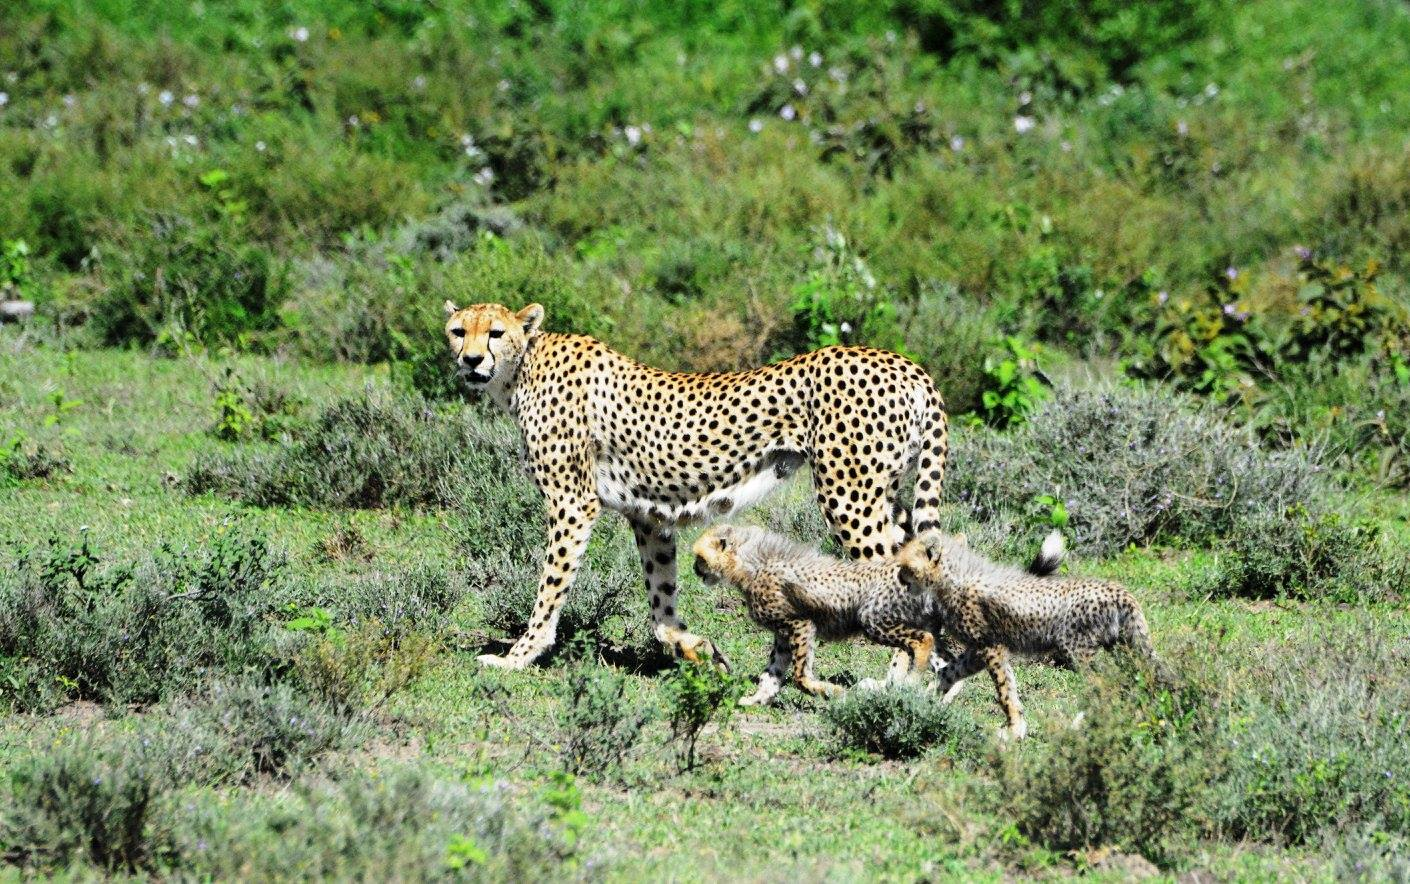 Cheetahs were among the live animals seized by authorities between 2010 and 2014. Photo by Udayan Dasgupta.